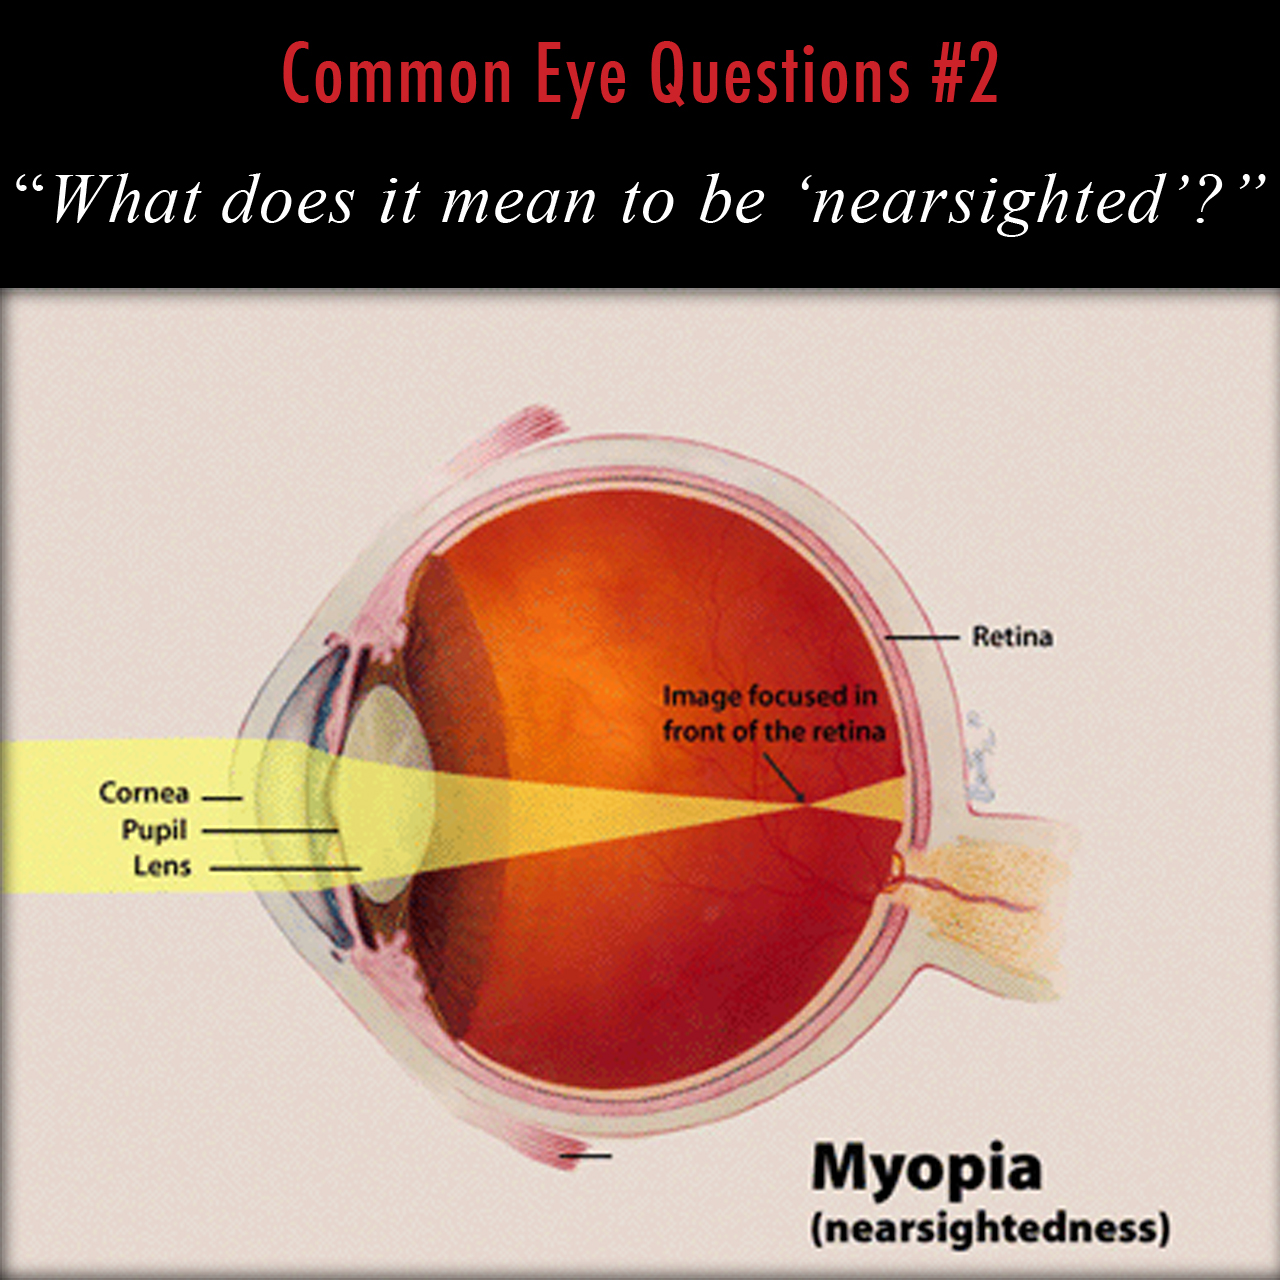 Anatomical diagram illustrating myopia, or nearsightedness